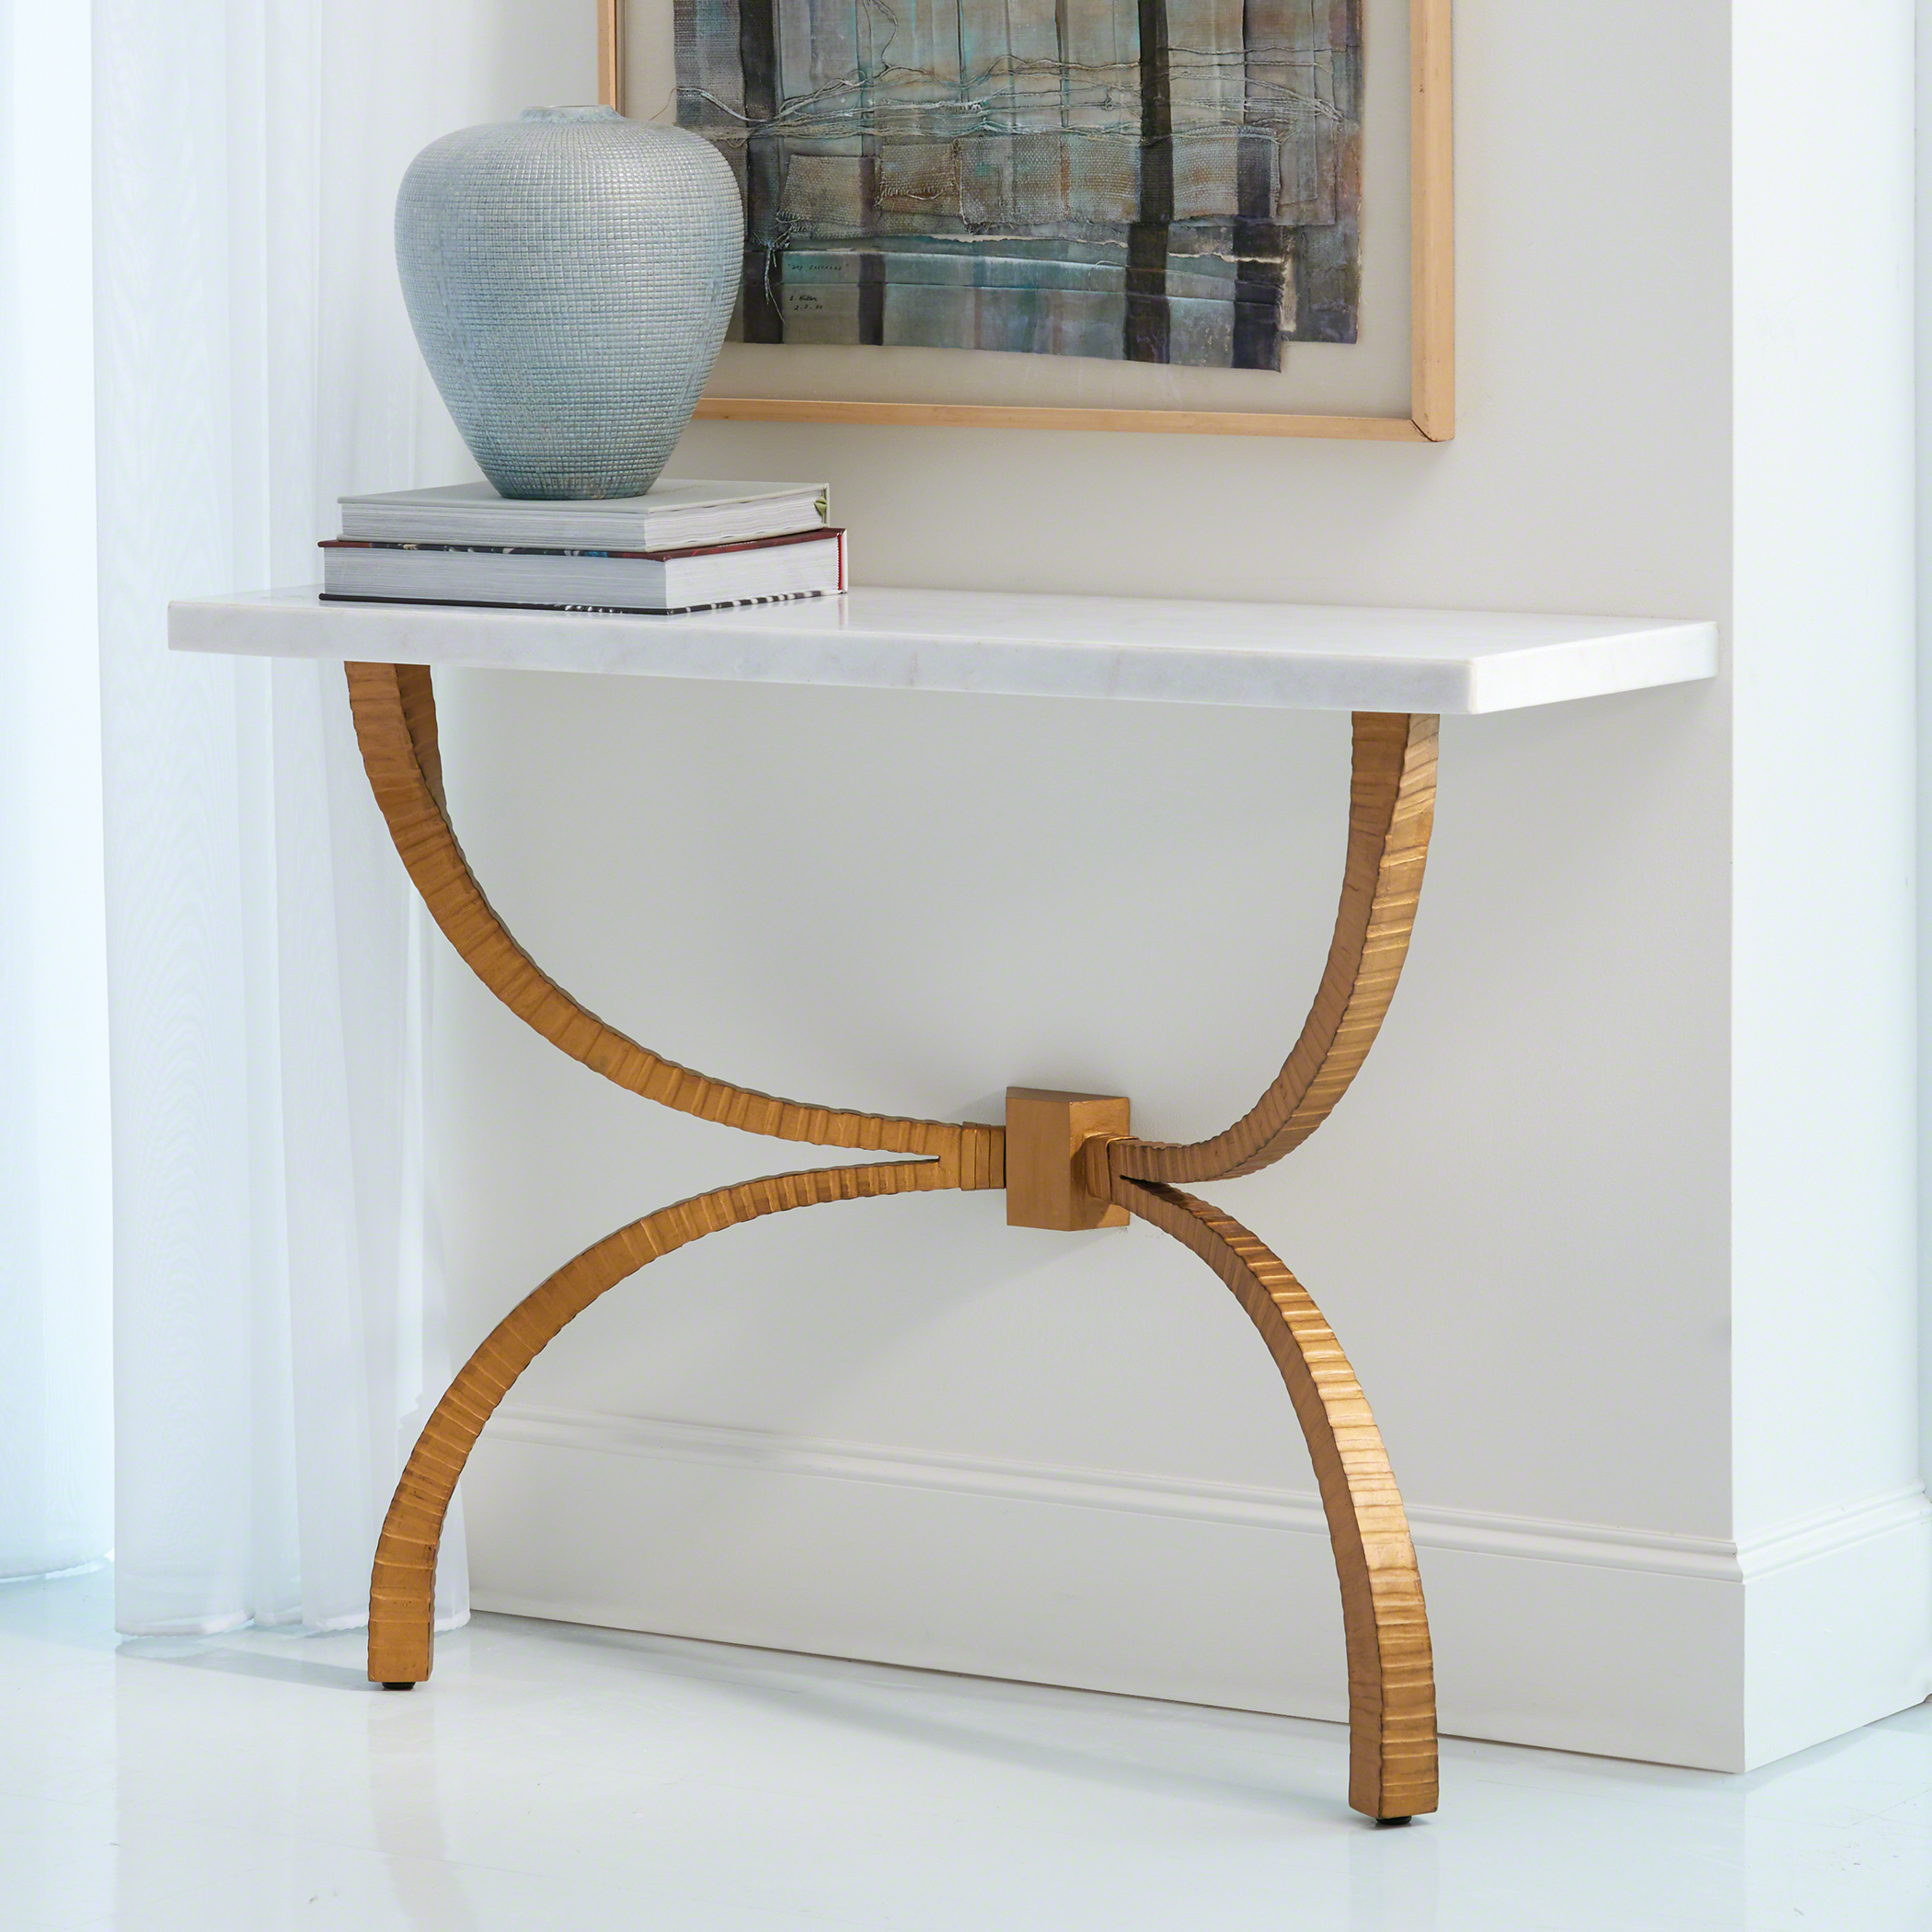 Small Space Console Tables Furniture Lighting Decor